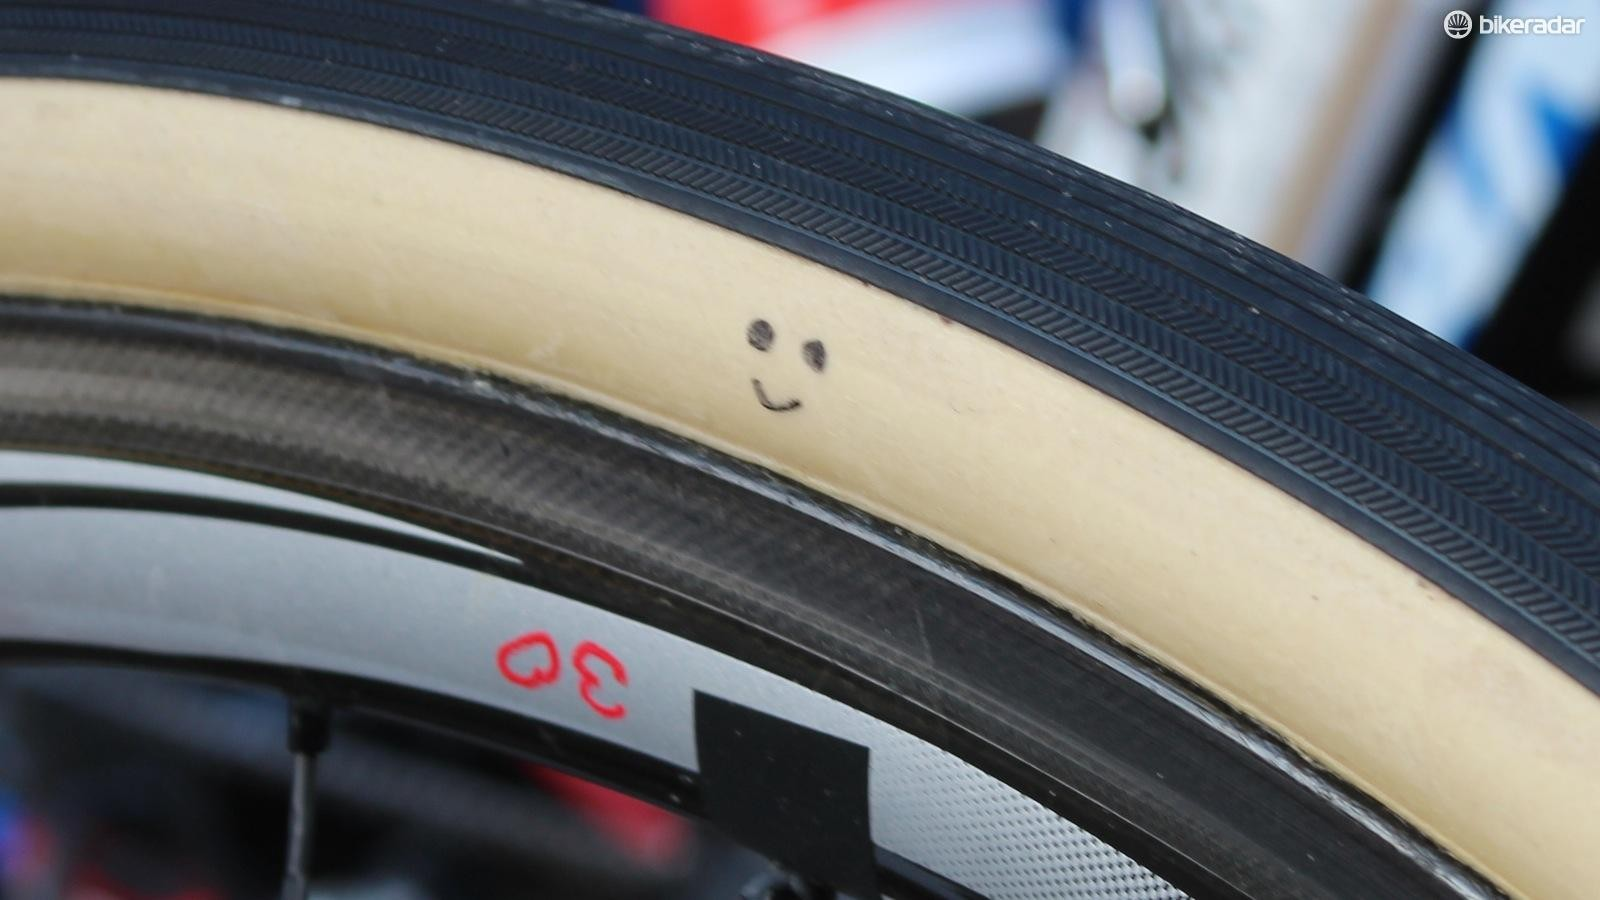 Team Giant-Alpecin ran 30mm Vittoria tubulars at Paris-Roubaix. The team edition 30mm tubulars were marked with this simple smile